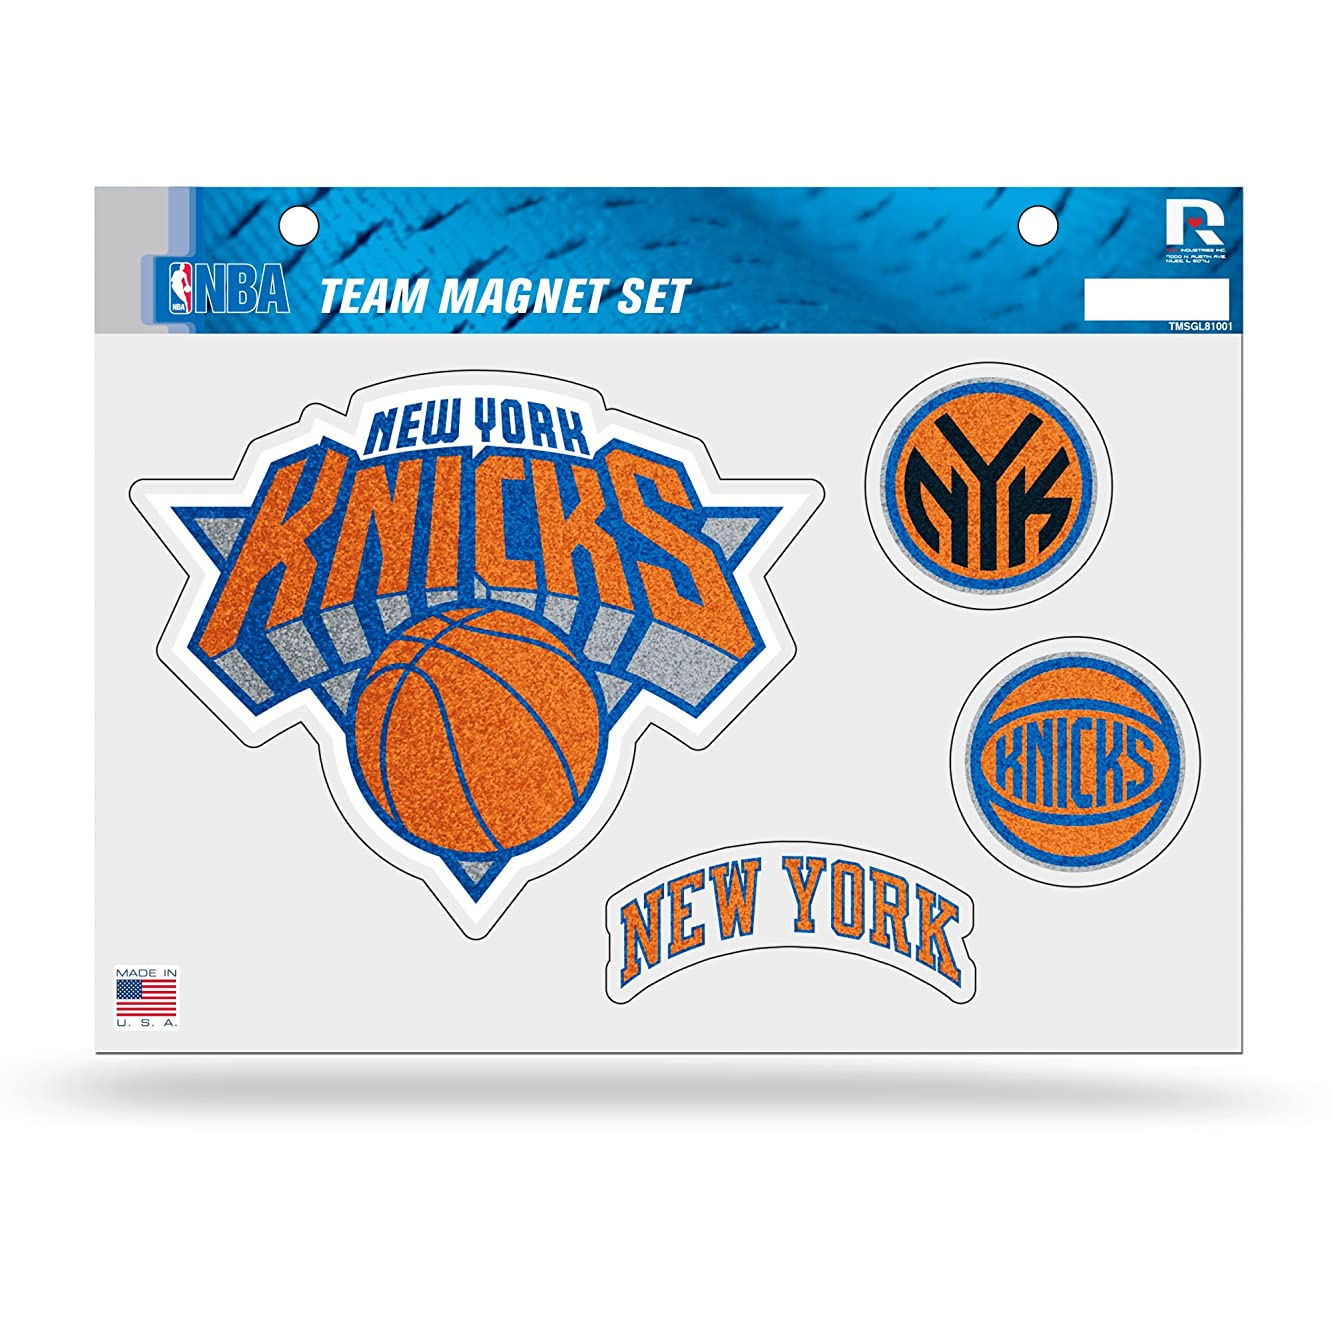 Rico NBA Bling Team Magnet Set